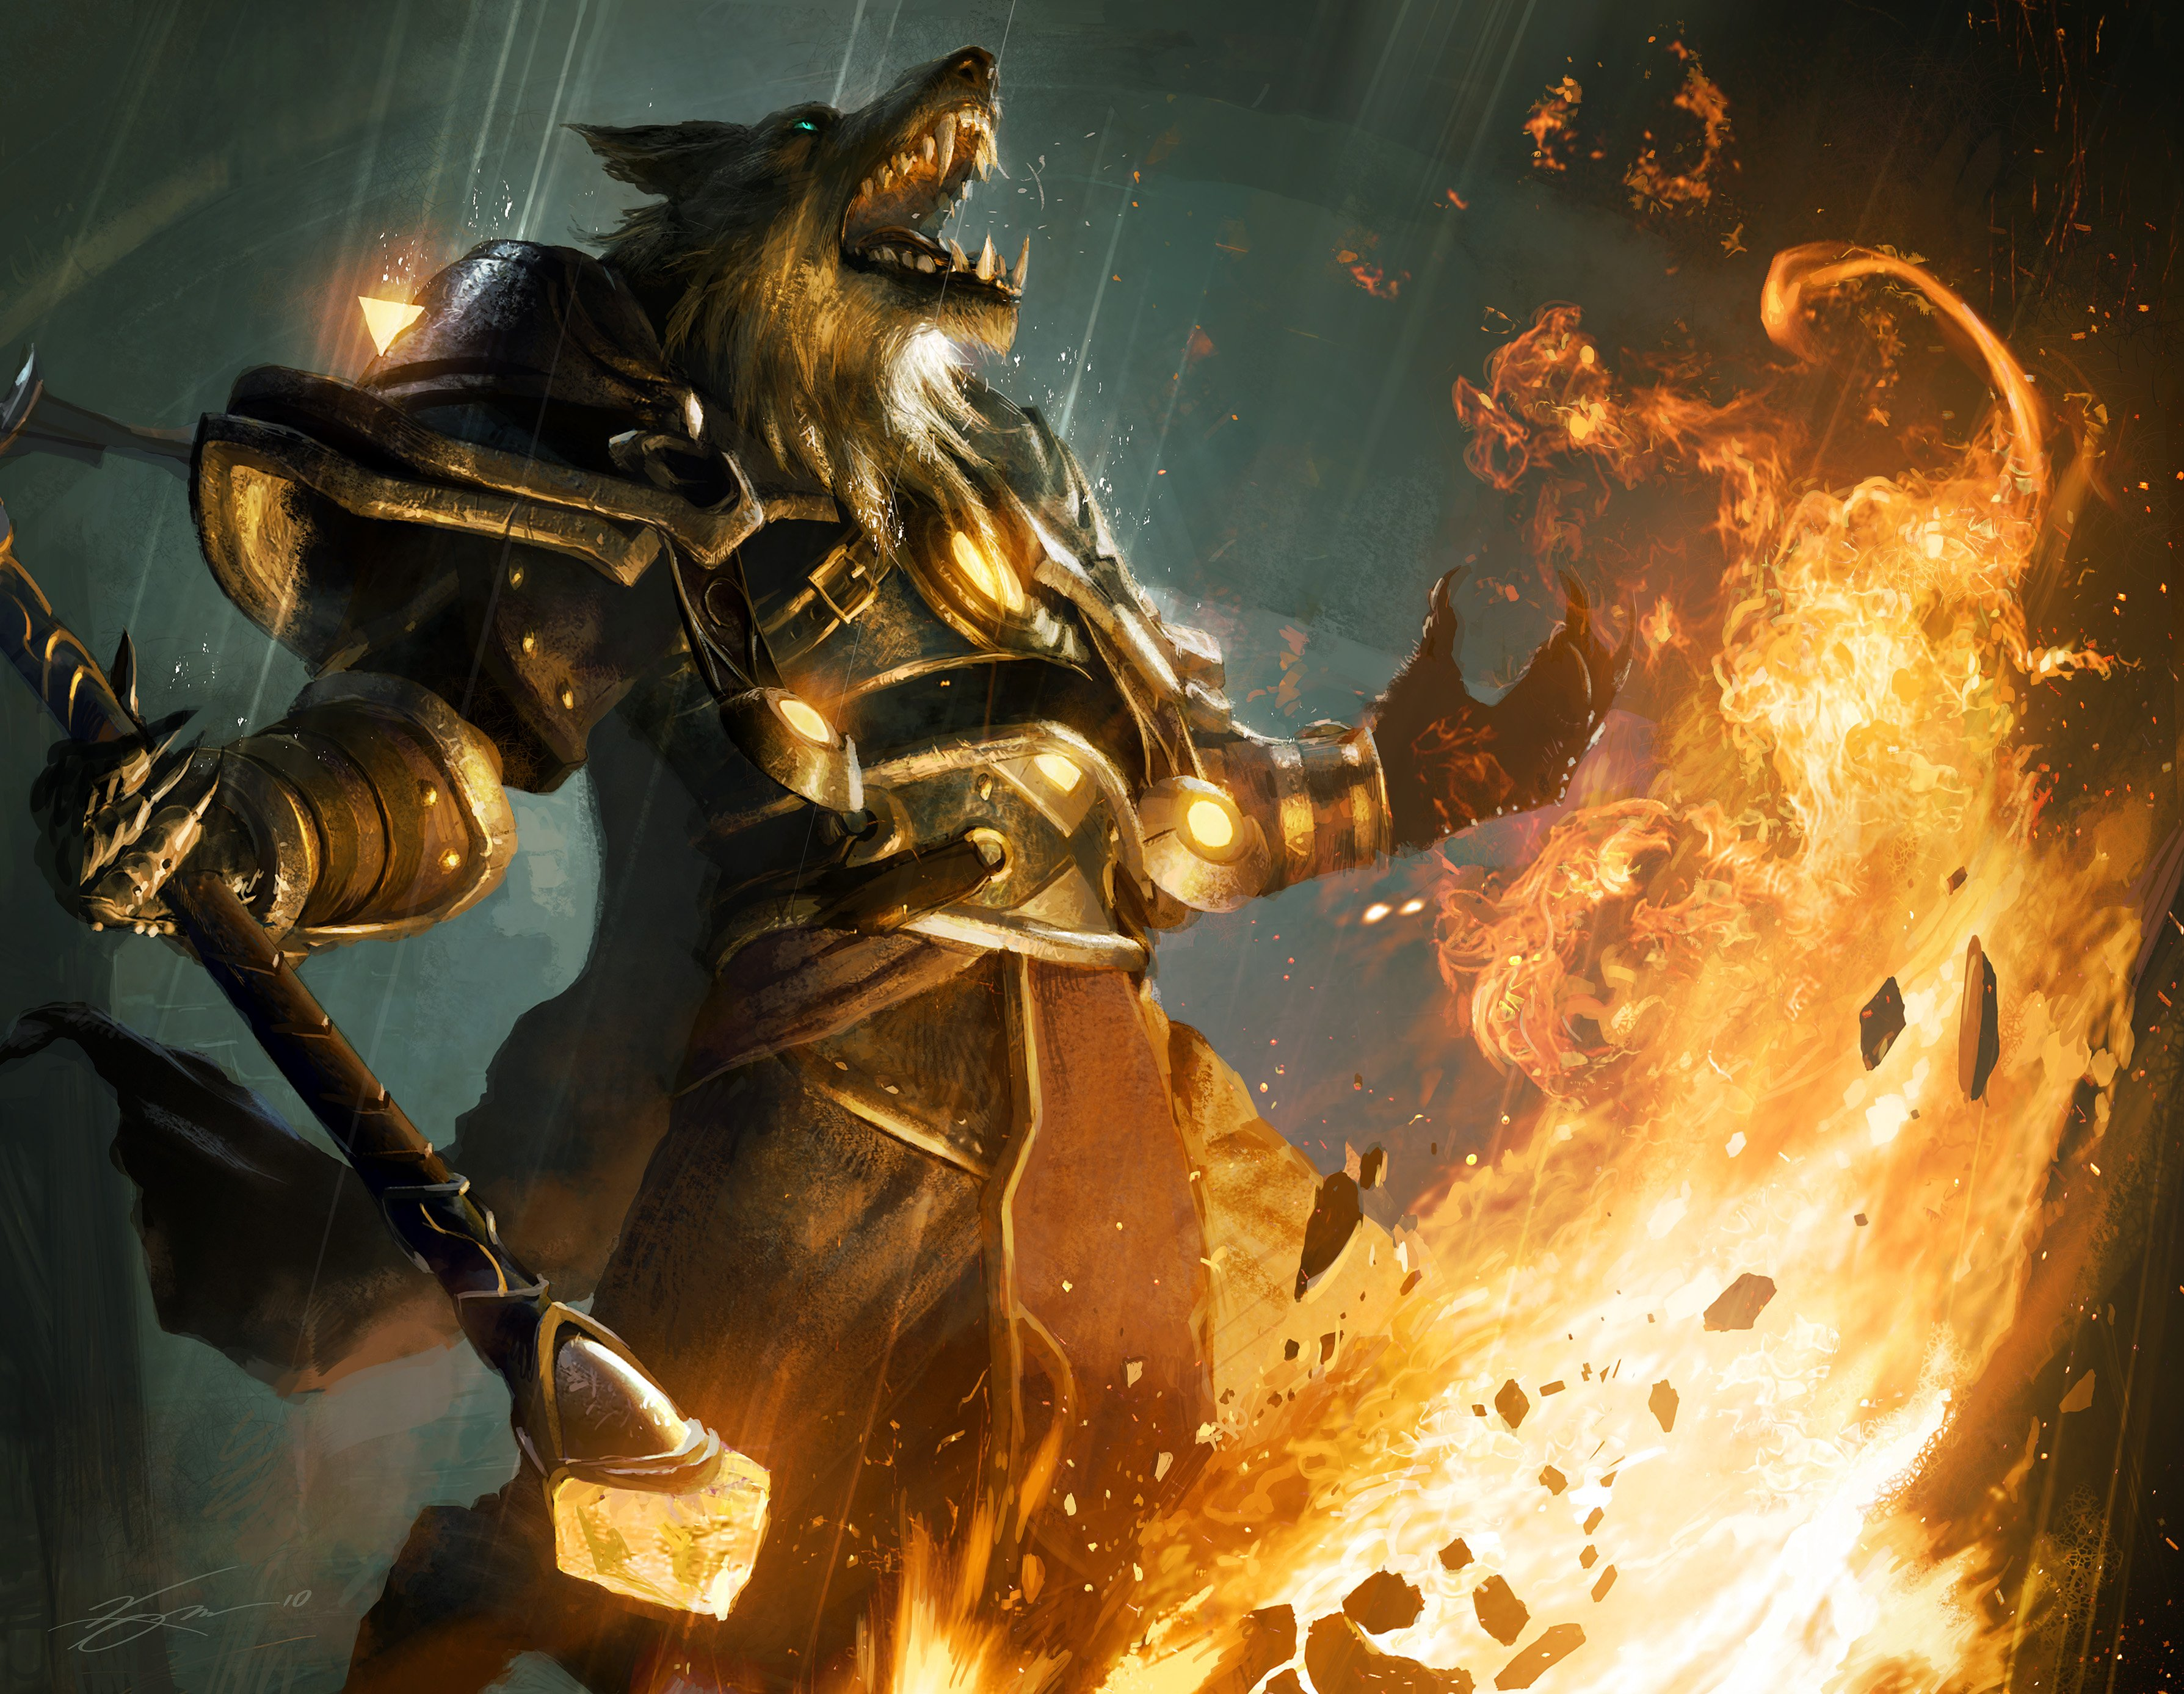 Can we get our new Worgen models? -Part 2- - World of Warcraft Forums